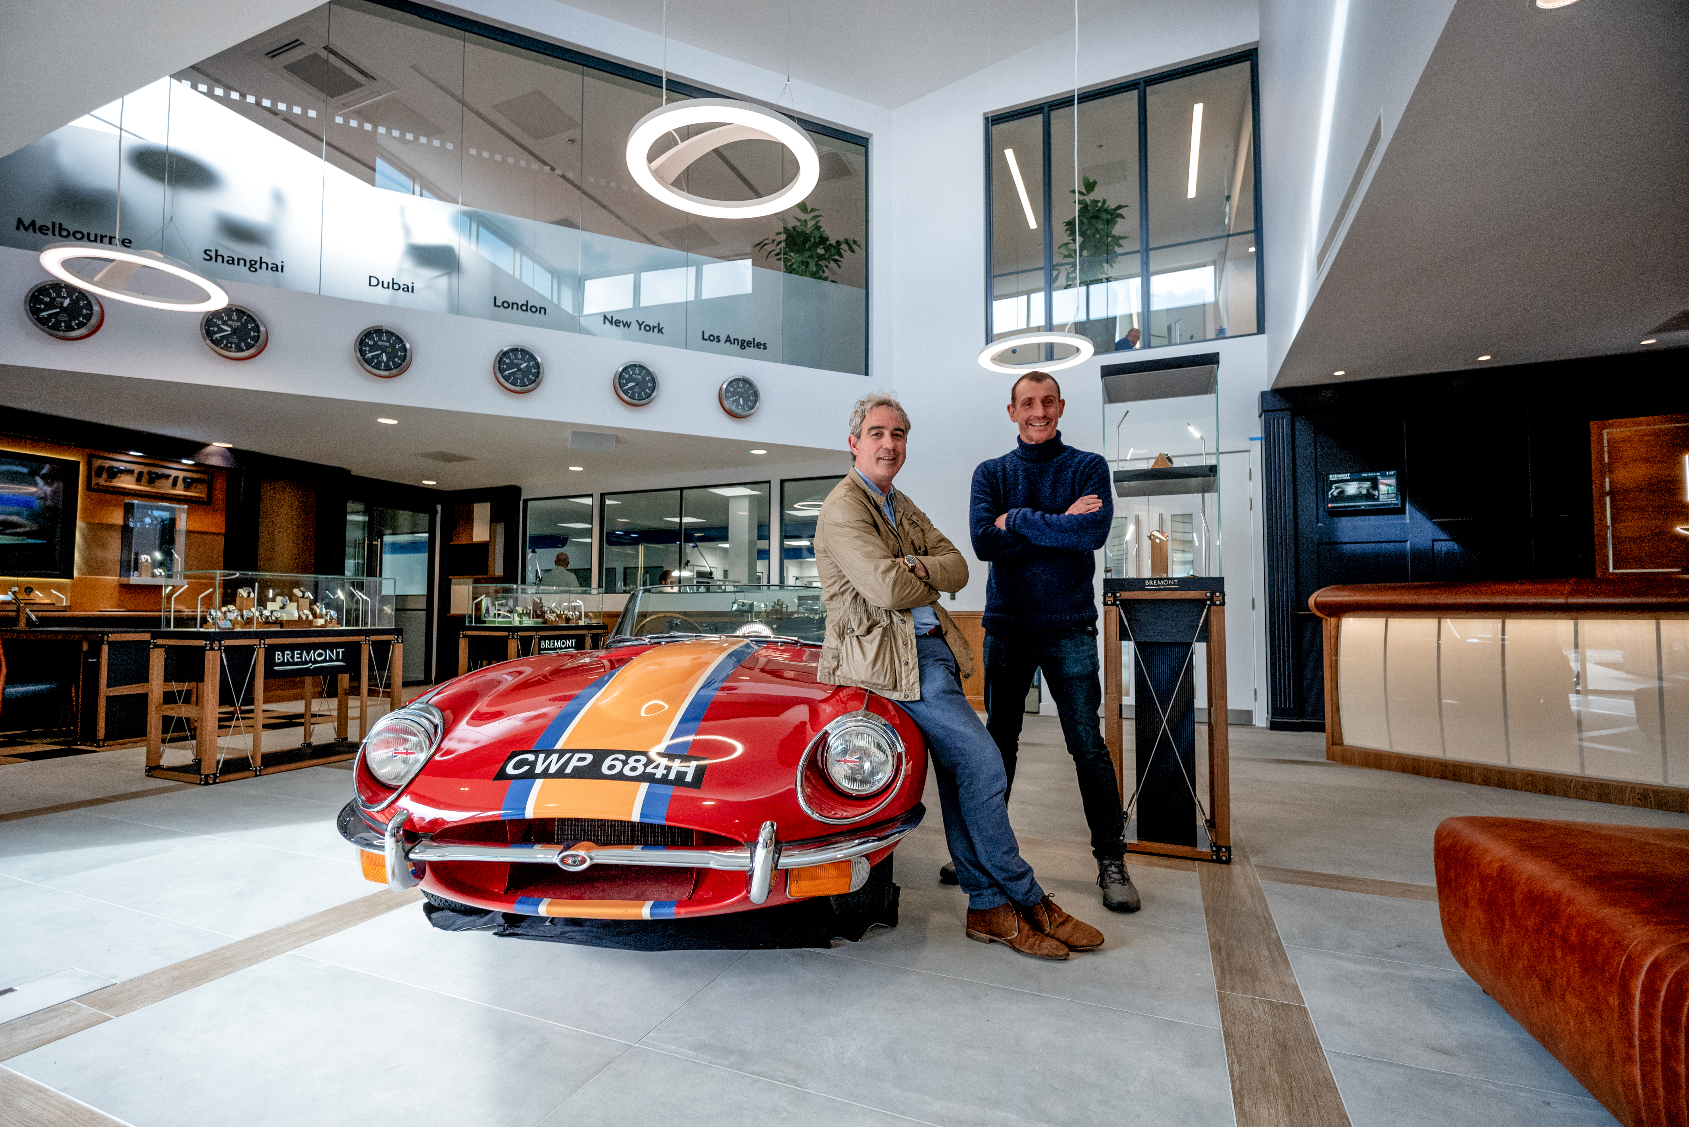 Bremont brings large scale watch production back to the UK with the opening of The Wing